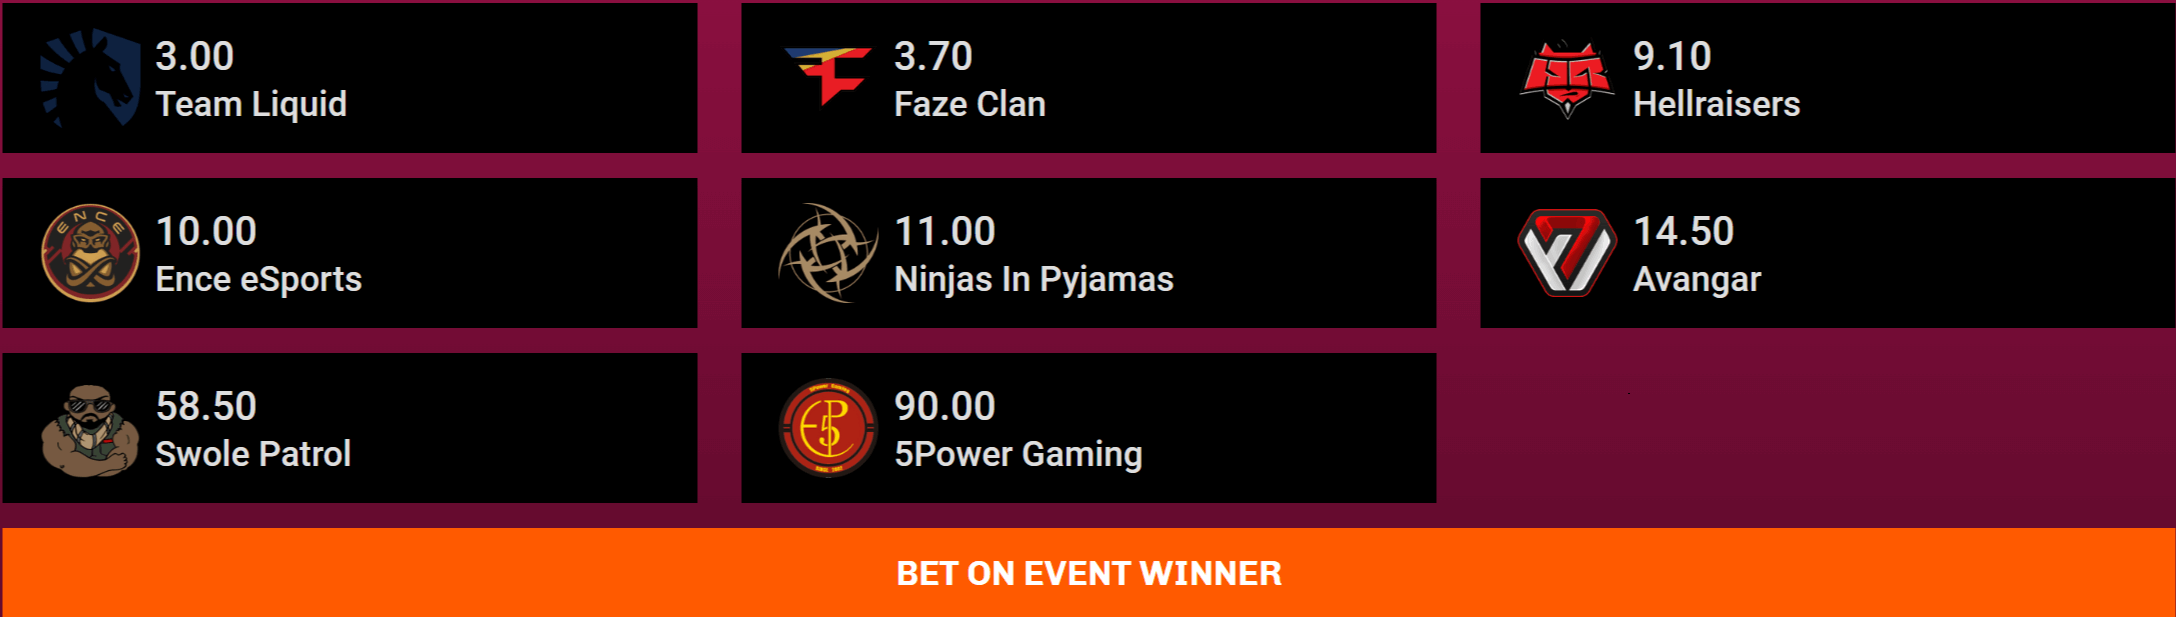 Epicenter 2018 - CS:GO Betting Odds, Tips & Predictions